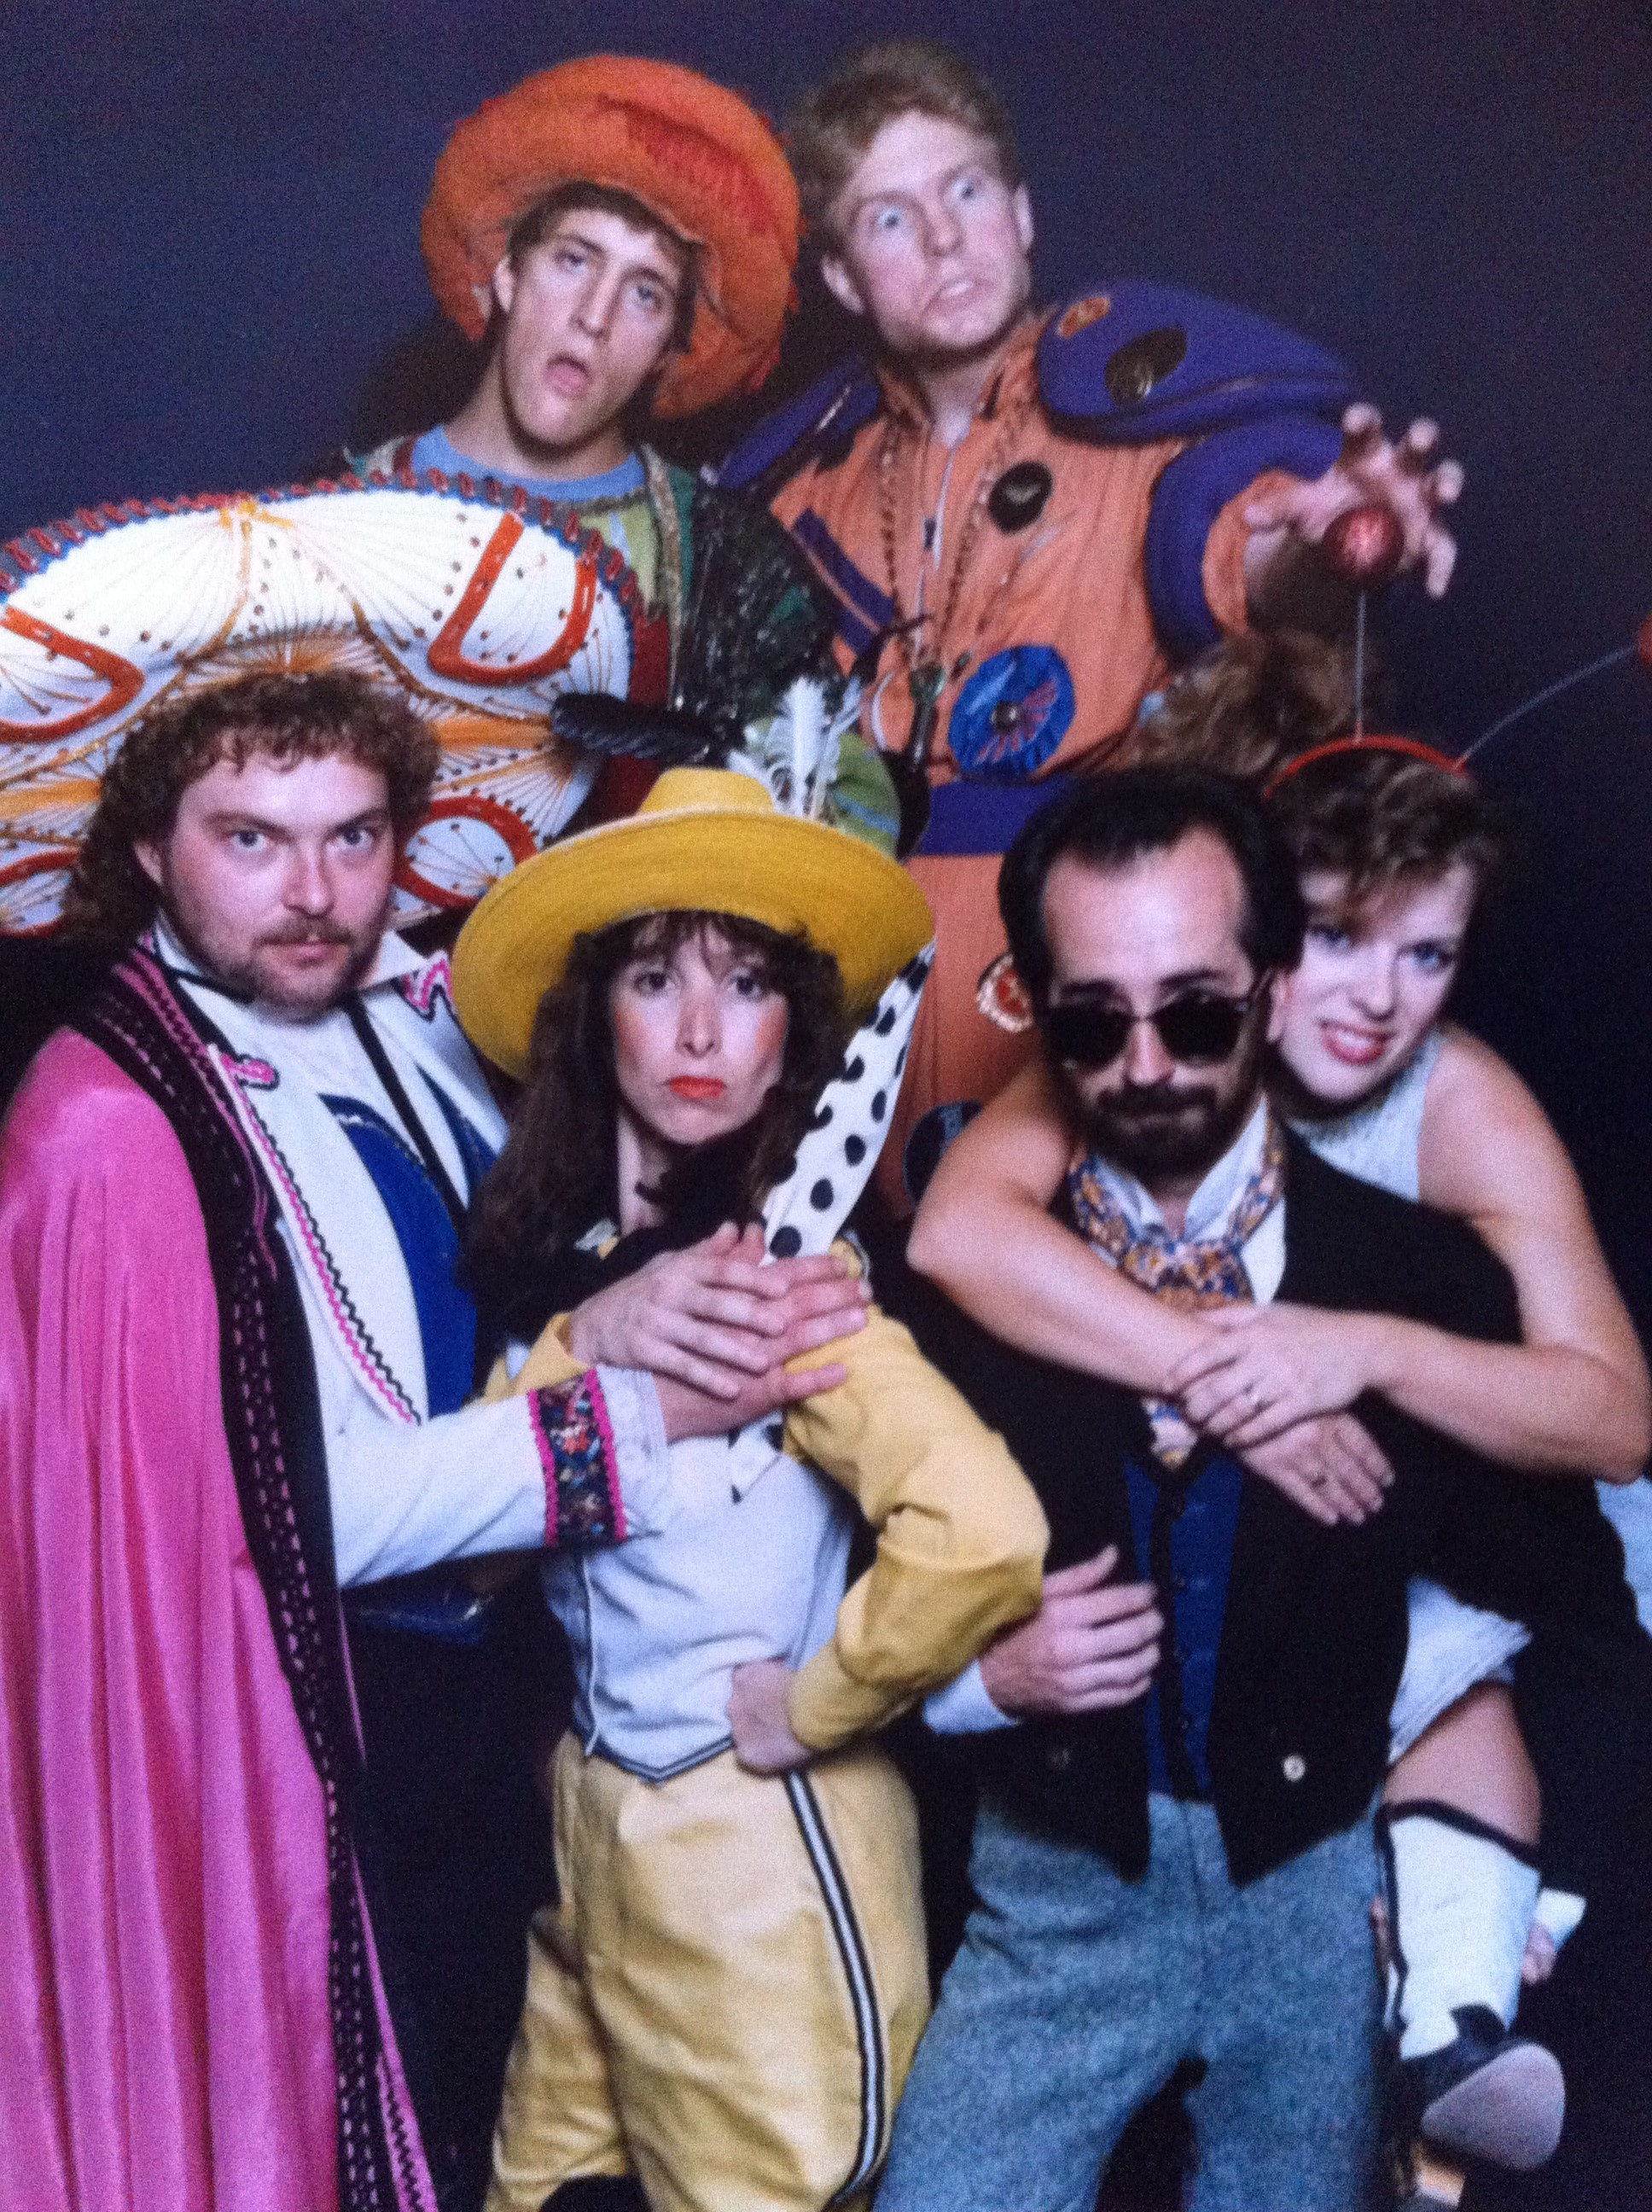 """Susan Sindelar (in yellow) and company in Childsplay's """"Montana Molly and the Peppermint Kid."""" (Photograph courtesy of Susan Sindelar.)"""